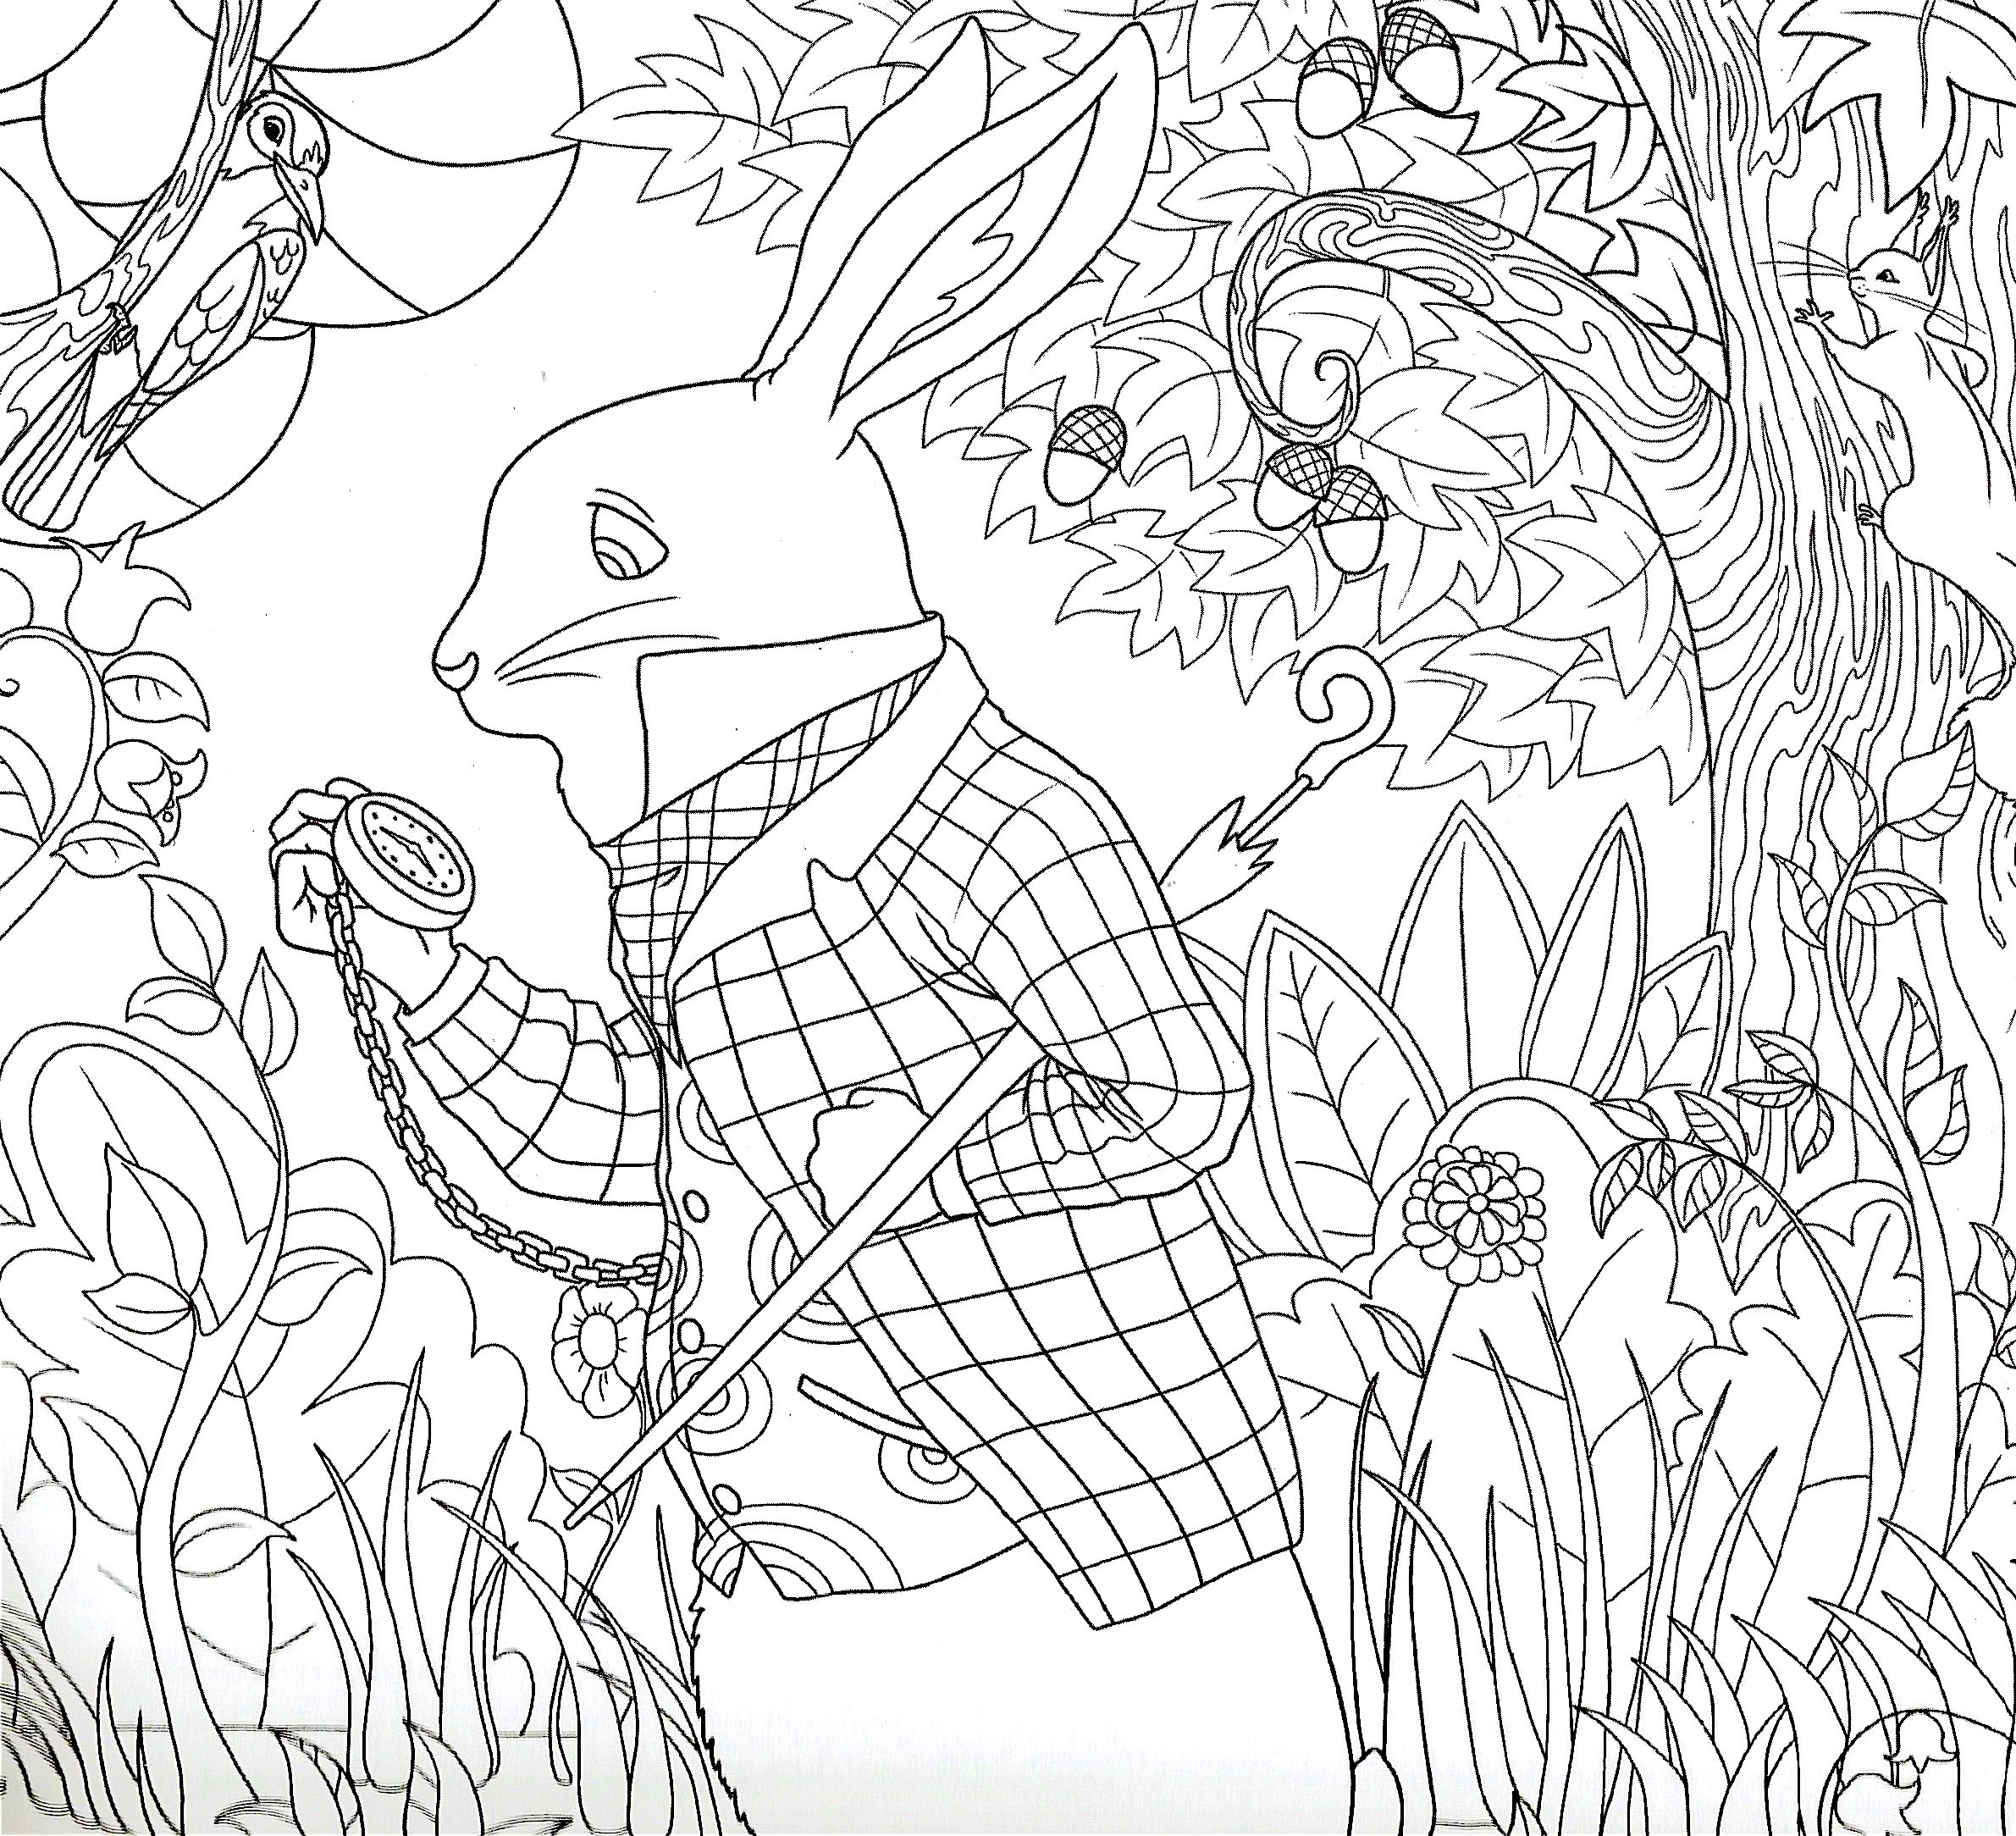 Alice In Wonderland Coloring Book Piccadilly Editor 9781608630028 Amazon Books